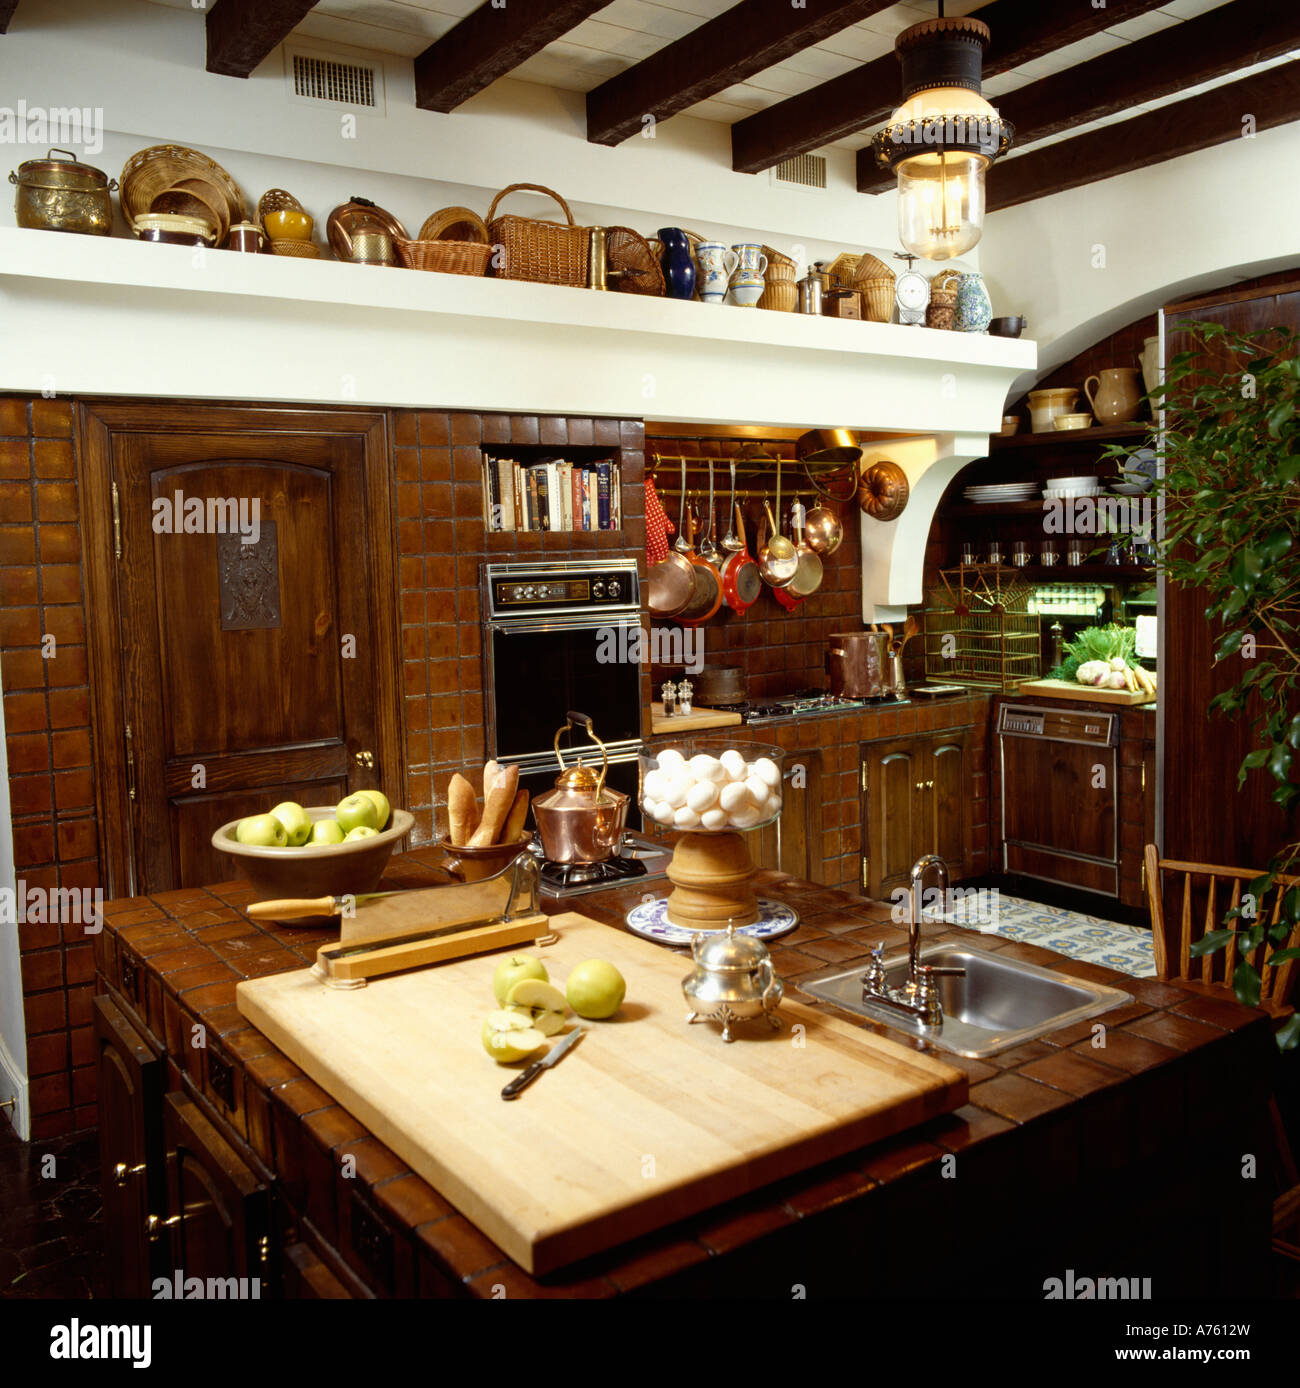 Large Wooden Chopping Board On Island Kitchen Unit With